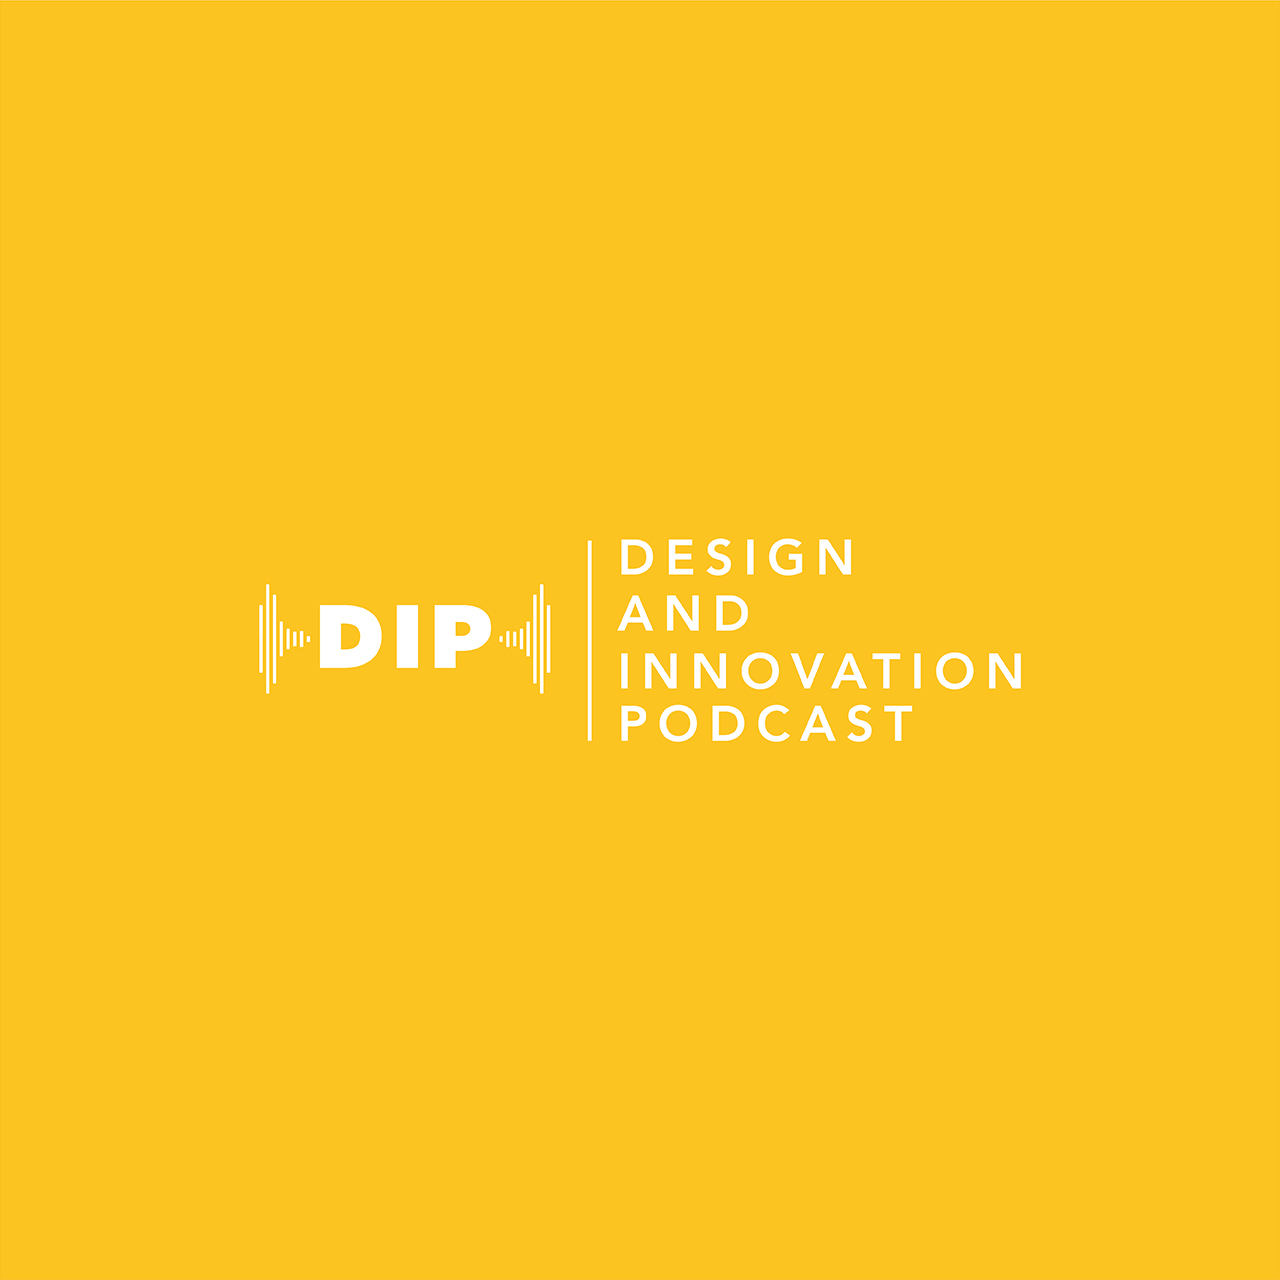 Introducing Design and Innovation Podcast